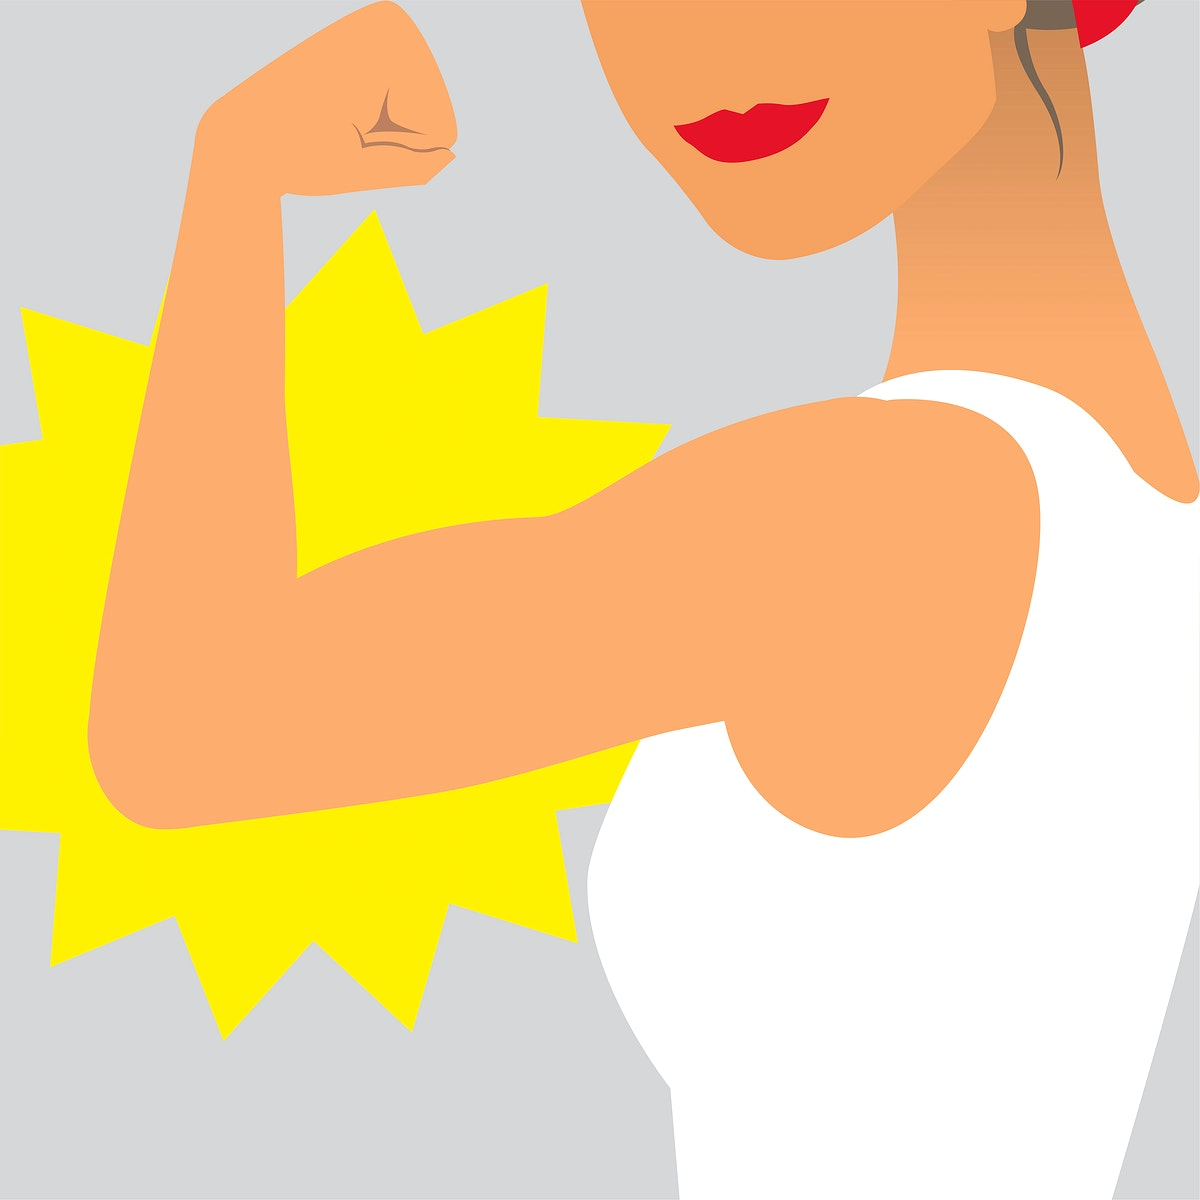 Female power and strength illustration